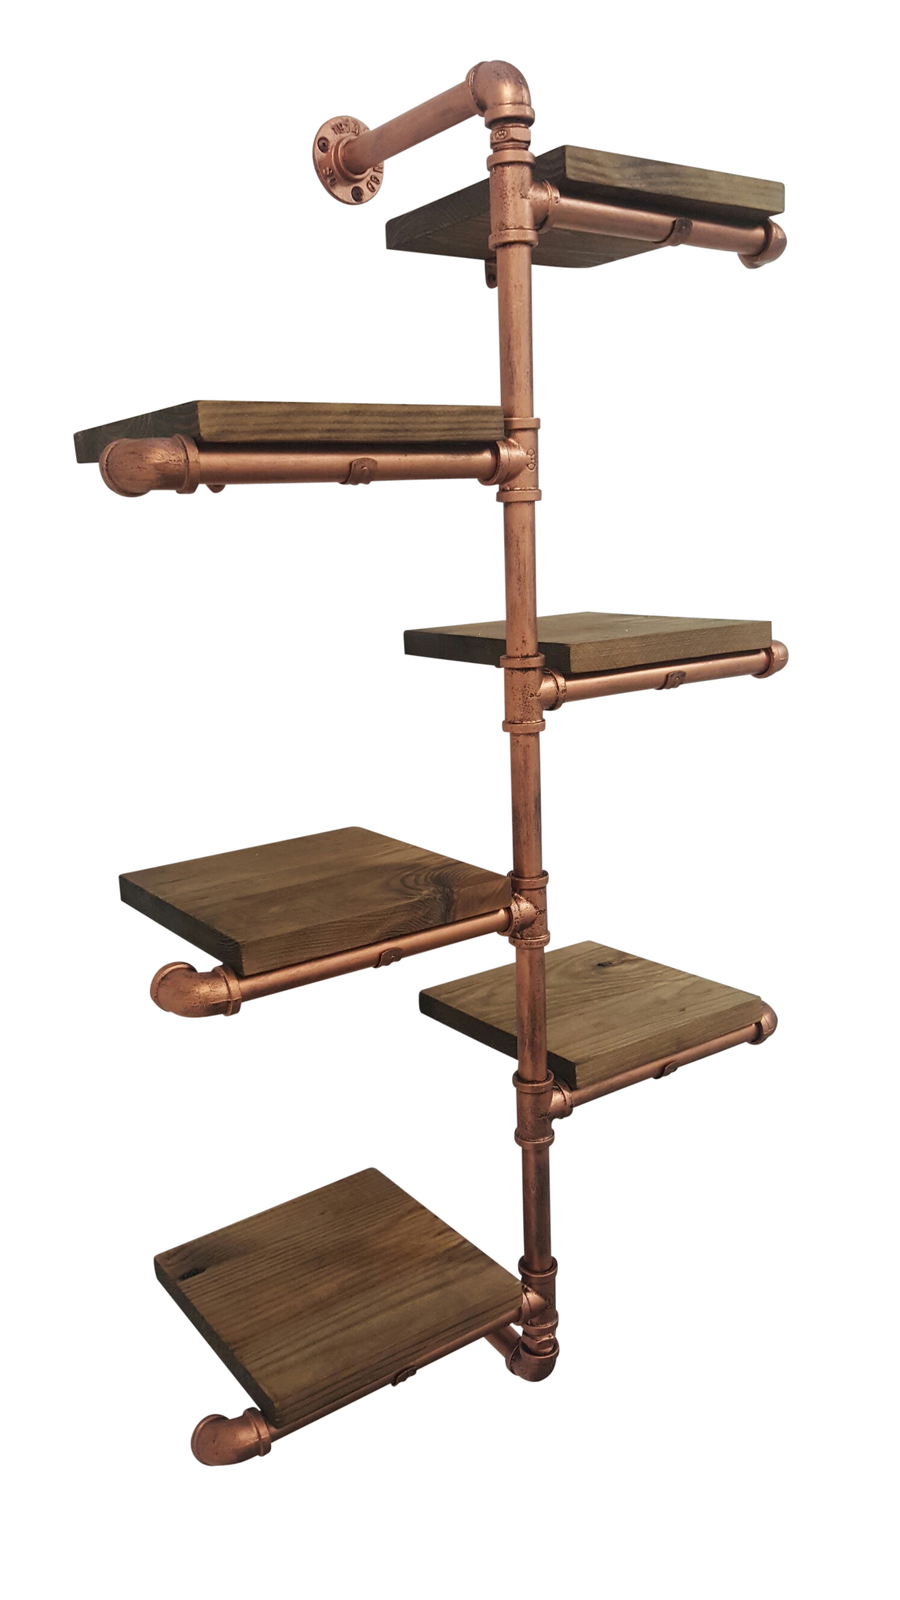 Pipe Rack Shelving Unit Wall Mounted Rax And Dollies